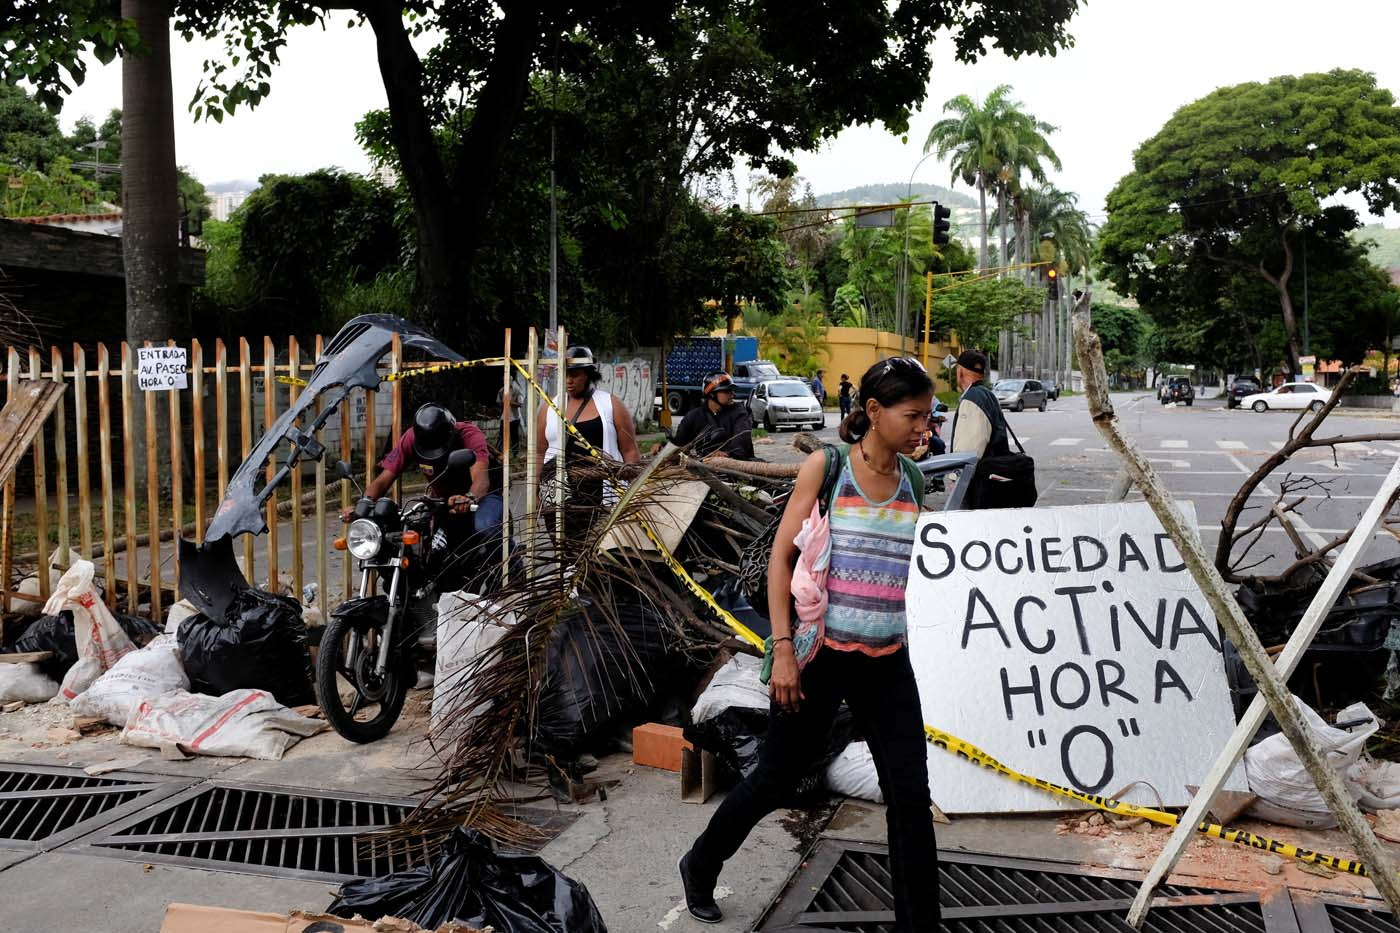 """Pedestrians walk past a barricade during a rally against Venezuelan President Nicolas Maduro's government in Caracas, Venezuela July 19, 2017. The placard reads, """"Active society. Hour 0"""". REUTERS/Marco Bello"""